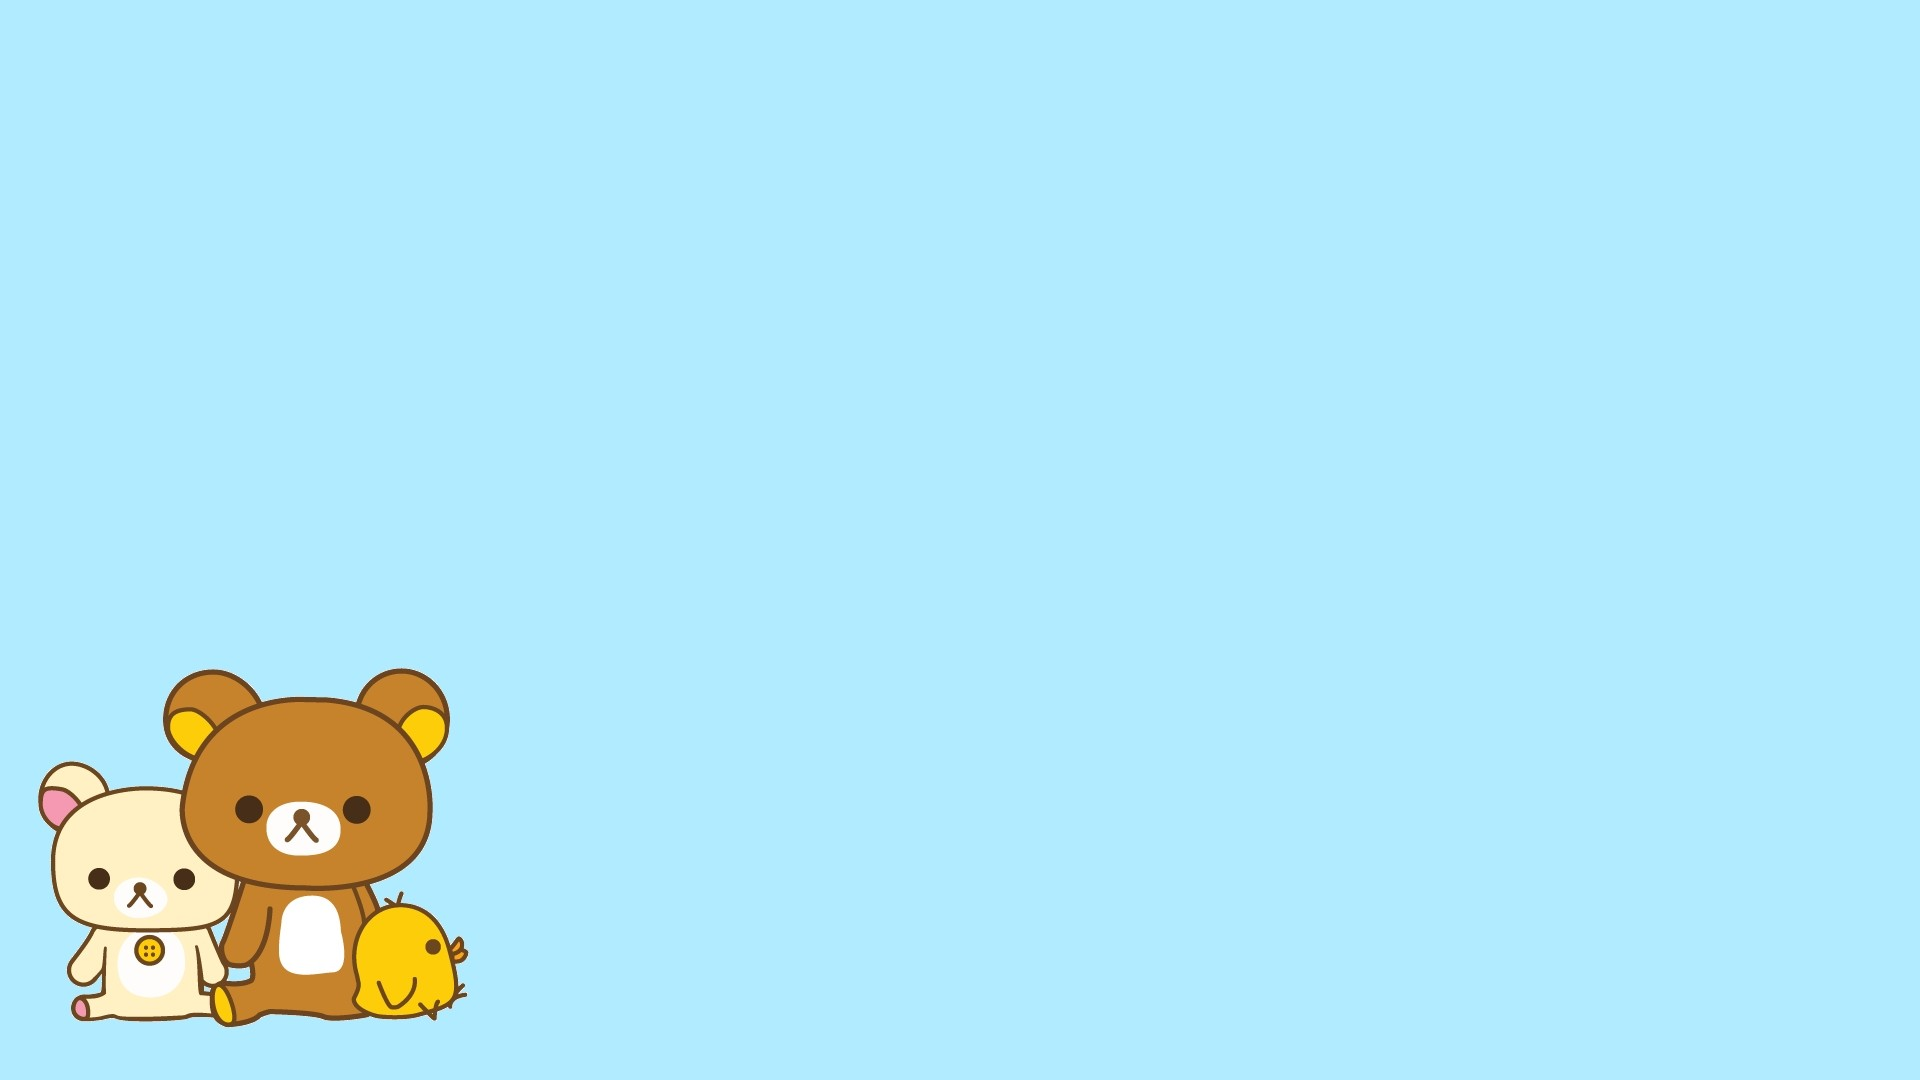 Res: 1920x1080, 7. rilakkuma-wallpaper7-1-600x338